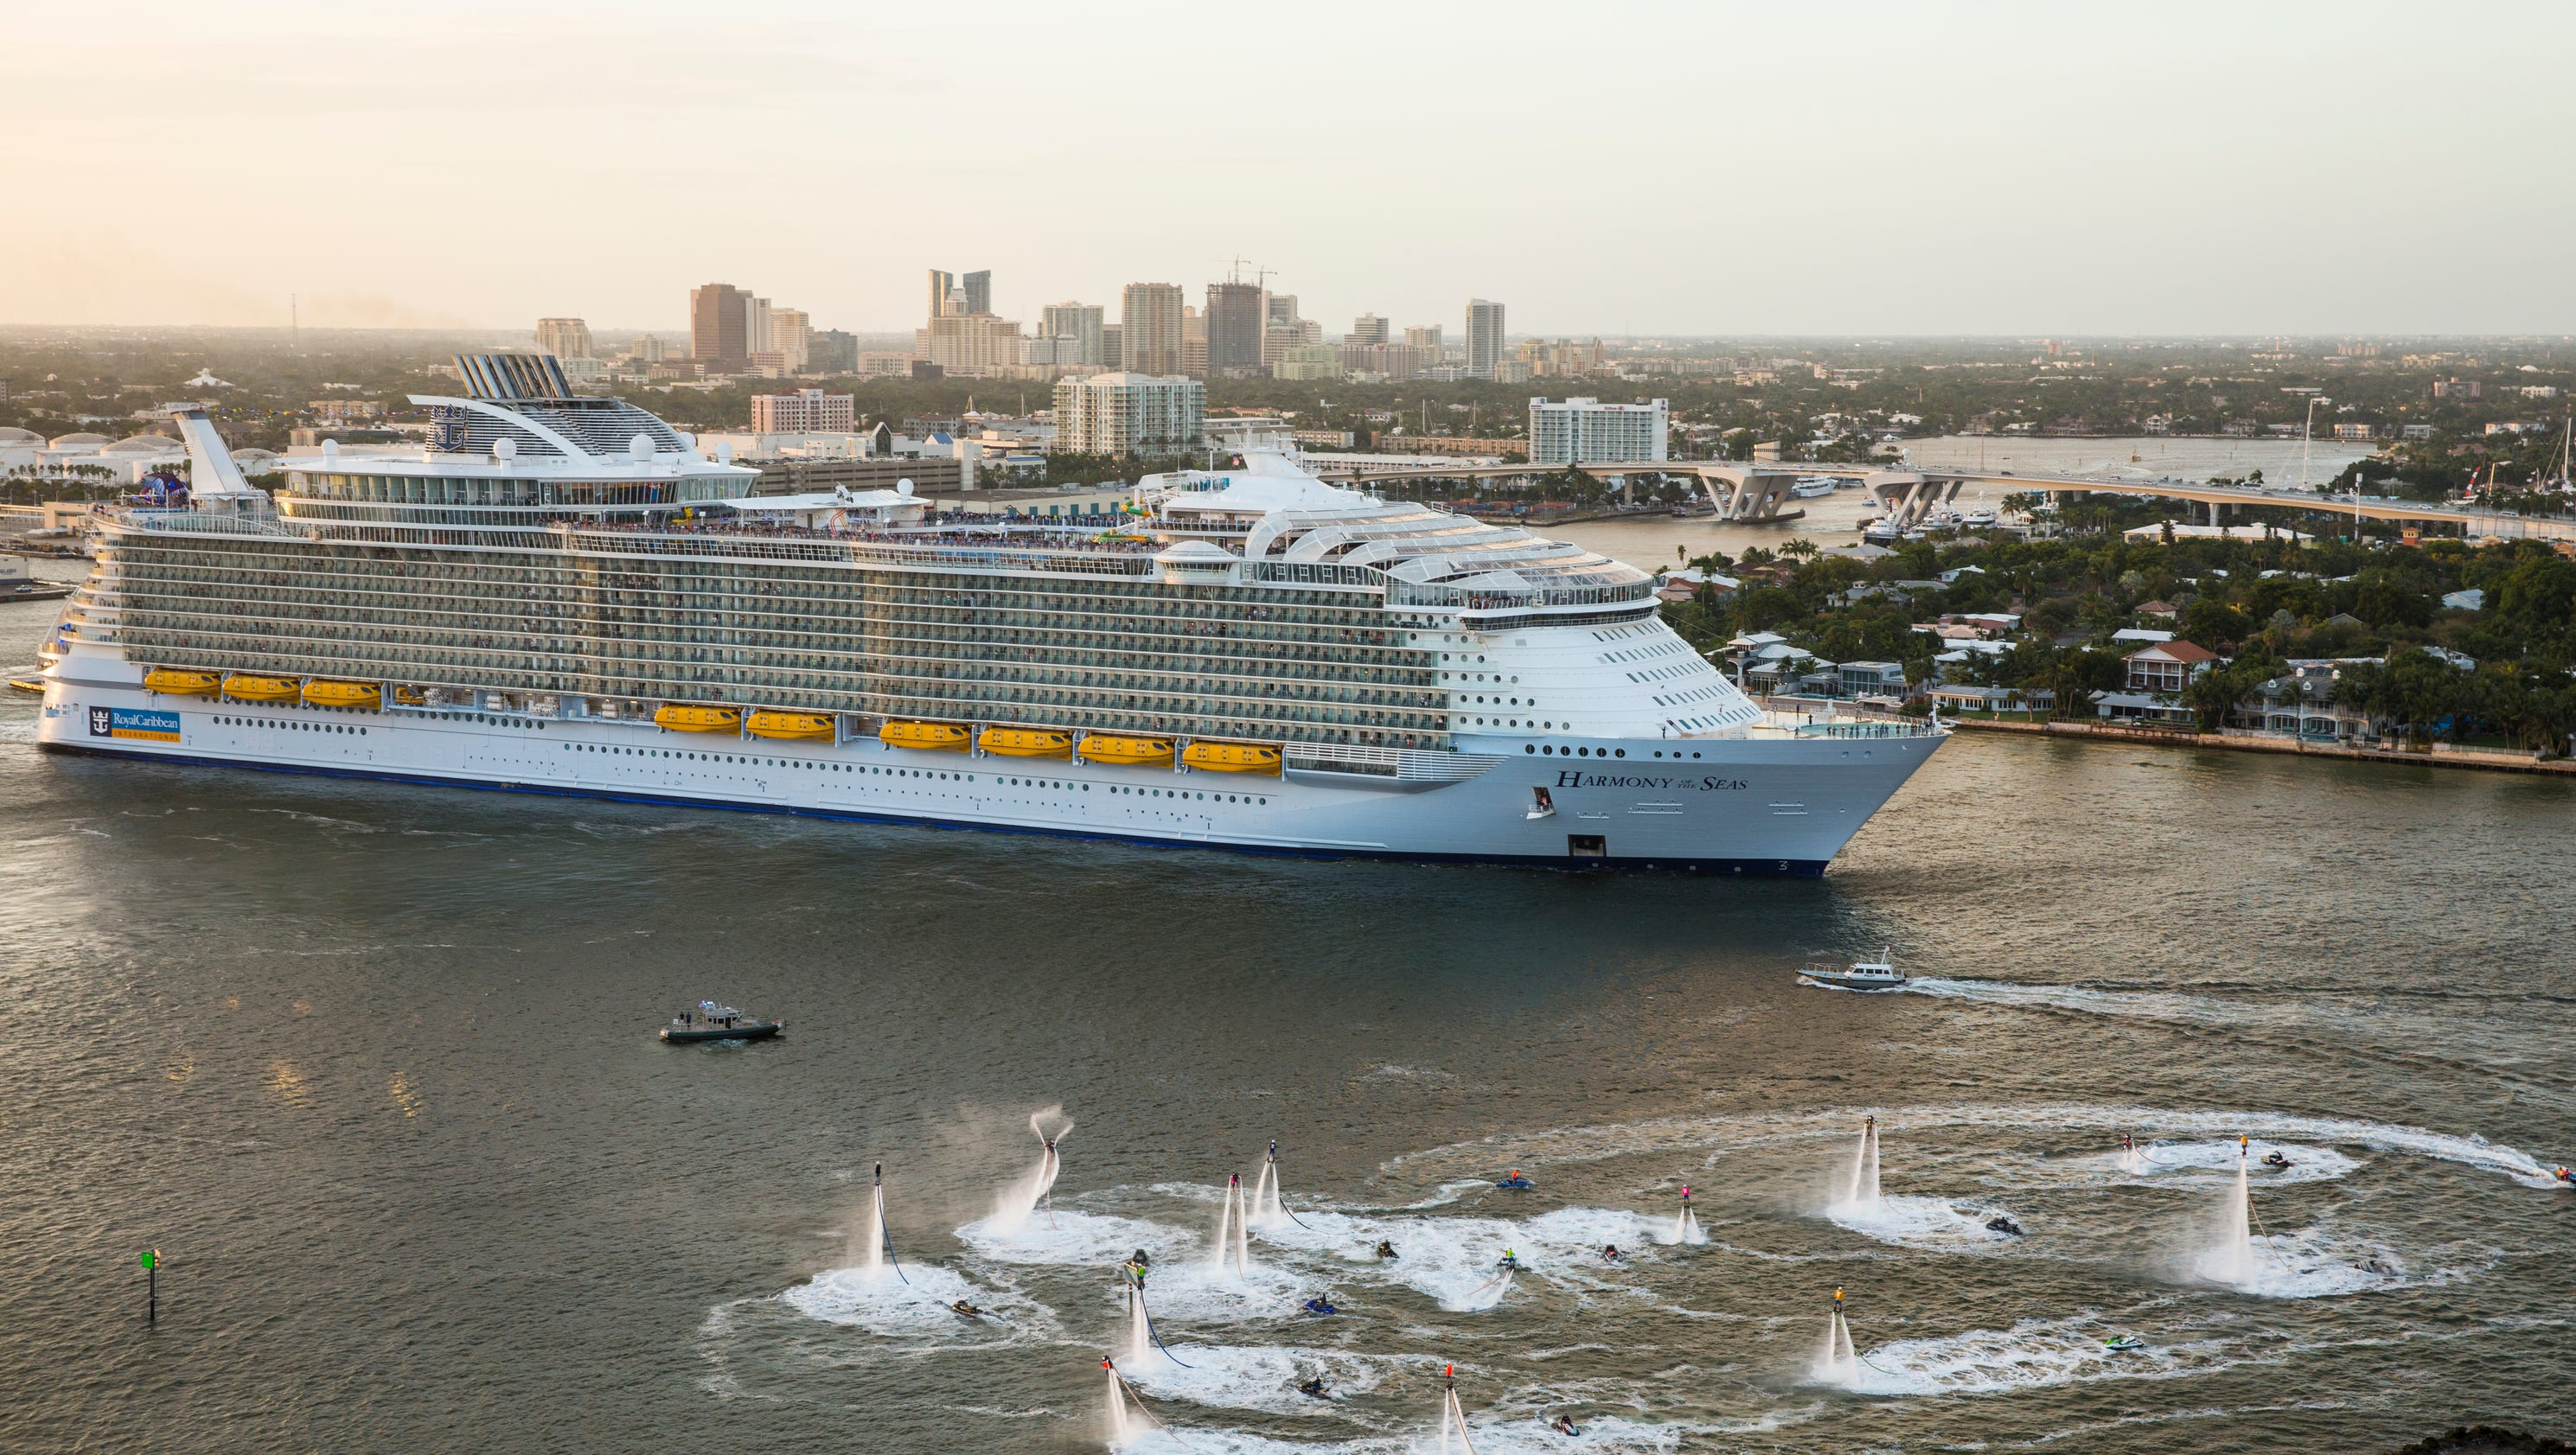 26 Facebook Largest Cruise Ship Out Of Florida  Punchaoscom